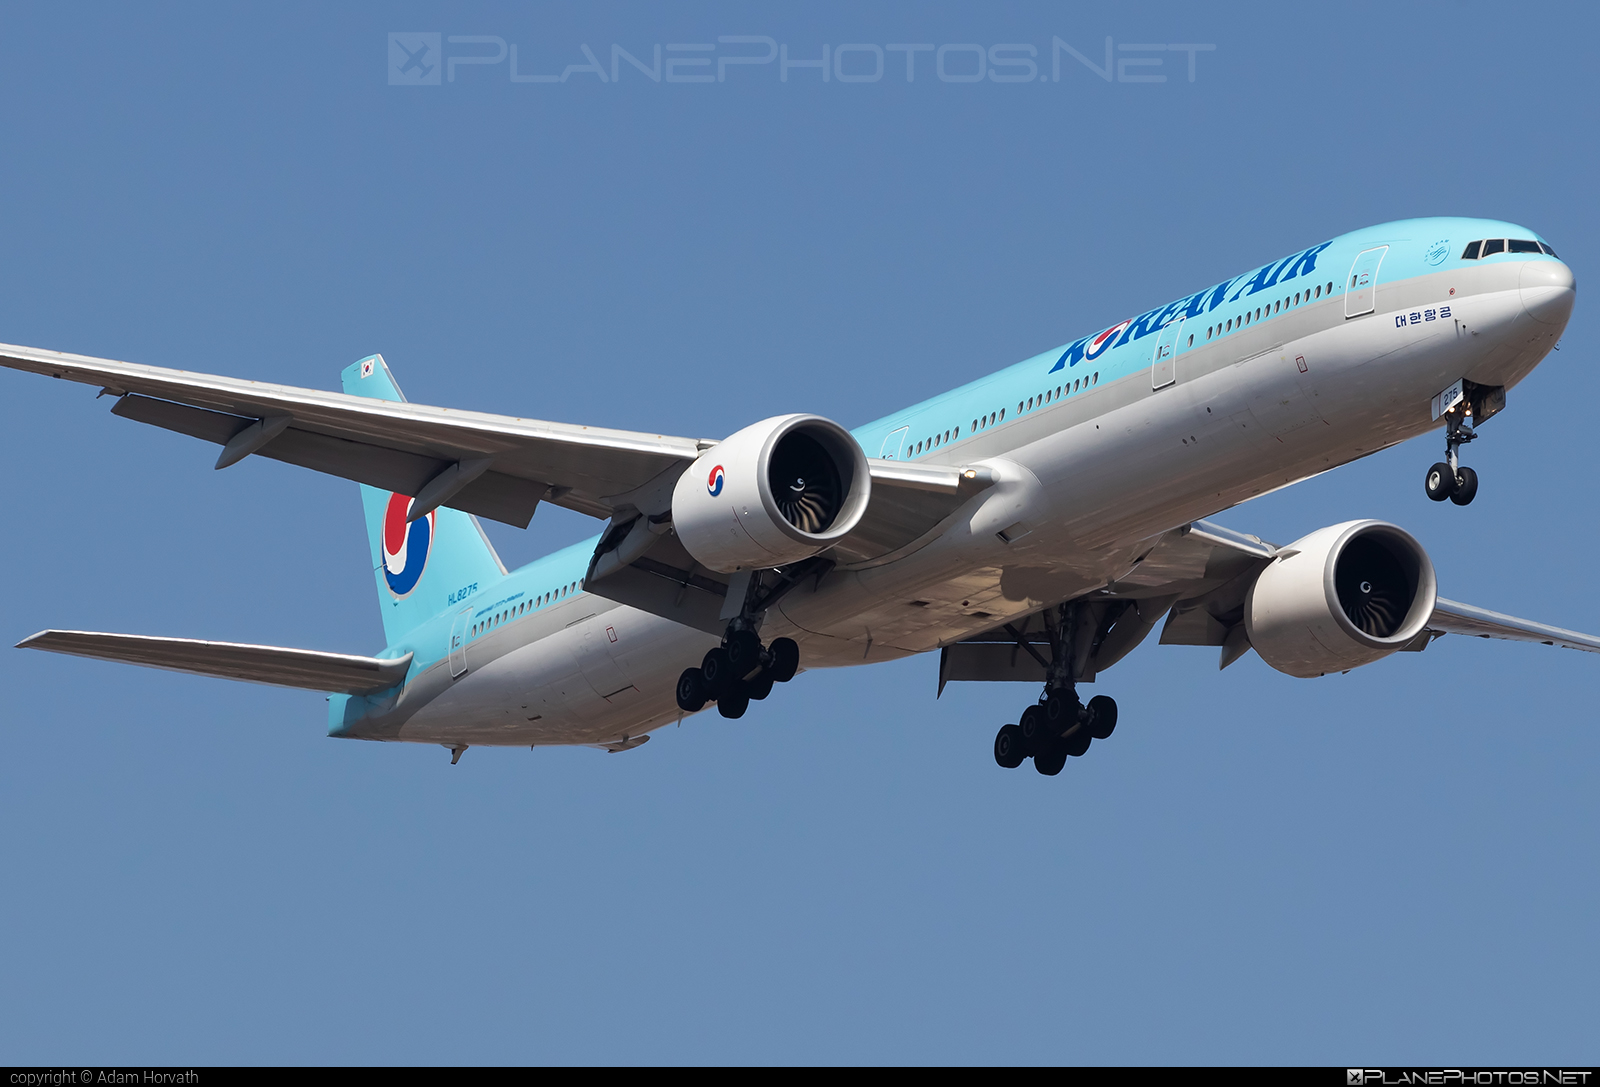 Boeing 777-300ER - HL8275 operated by Korean Air #b777 #b777er #boeing #boeing777 #koreanair #tripleseven